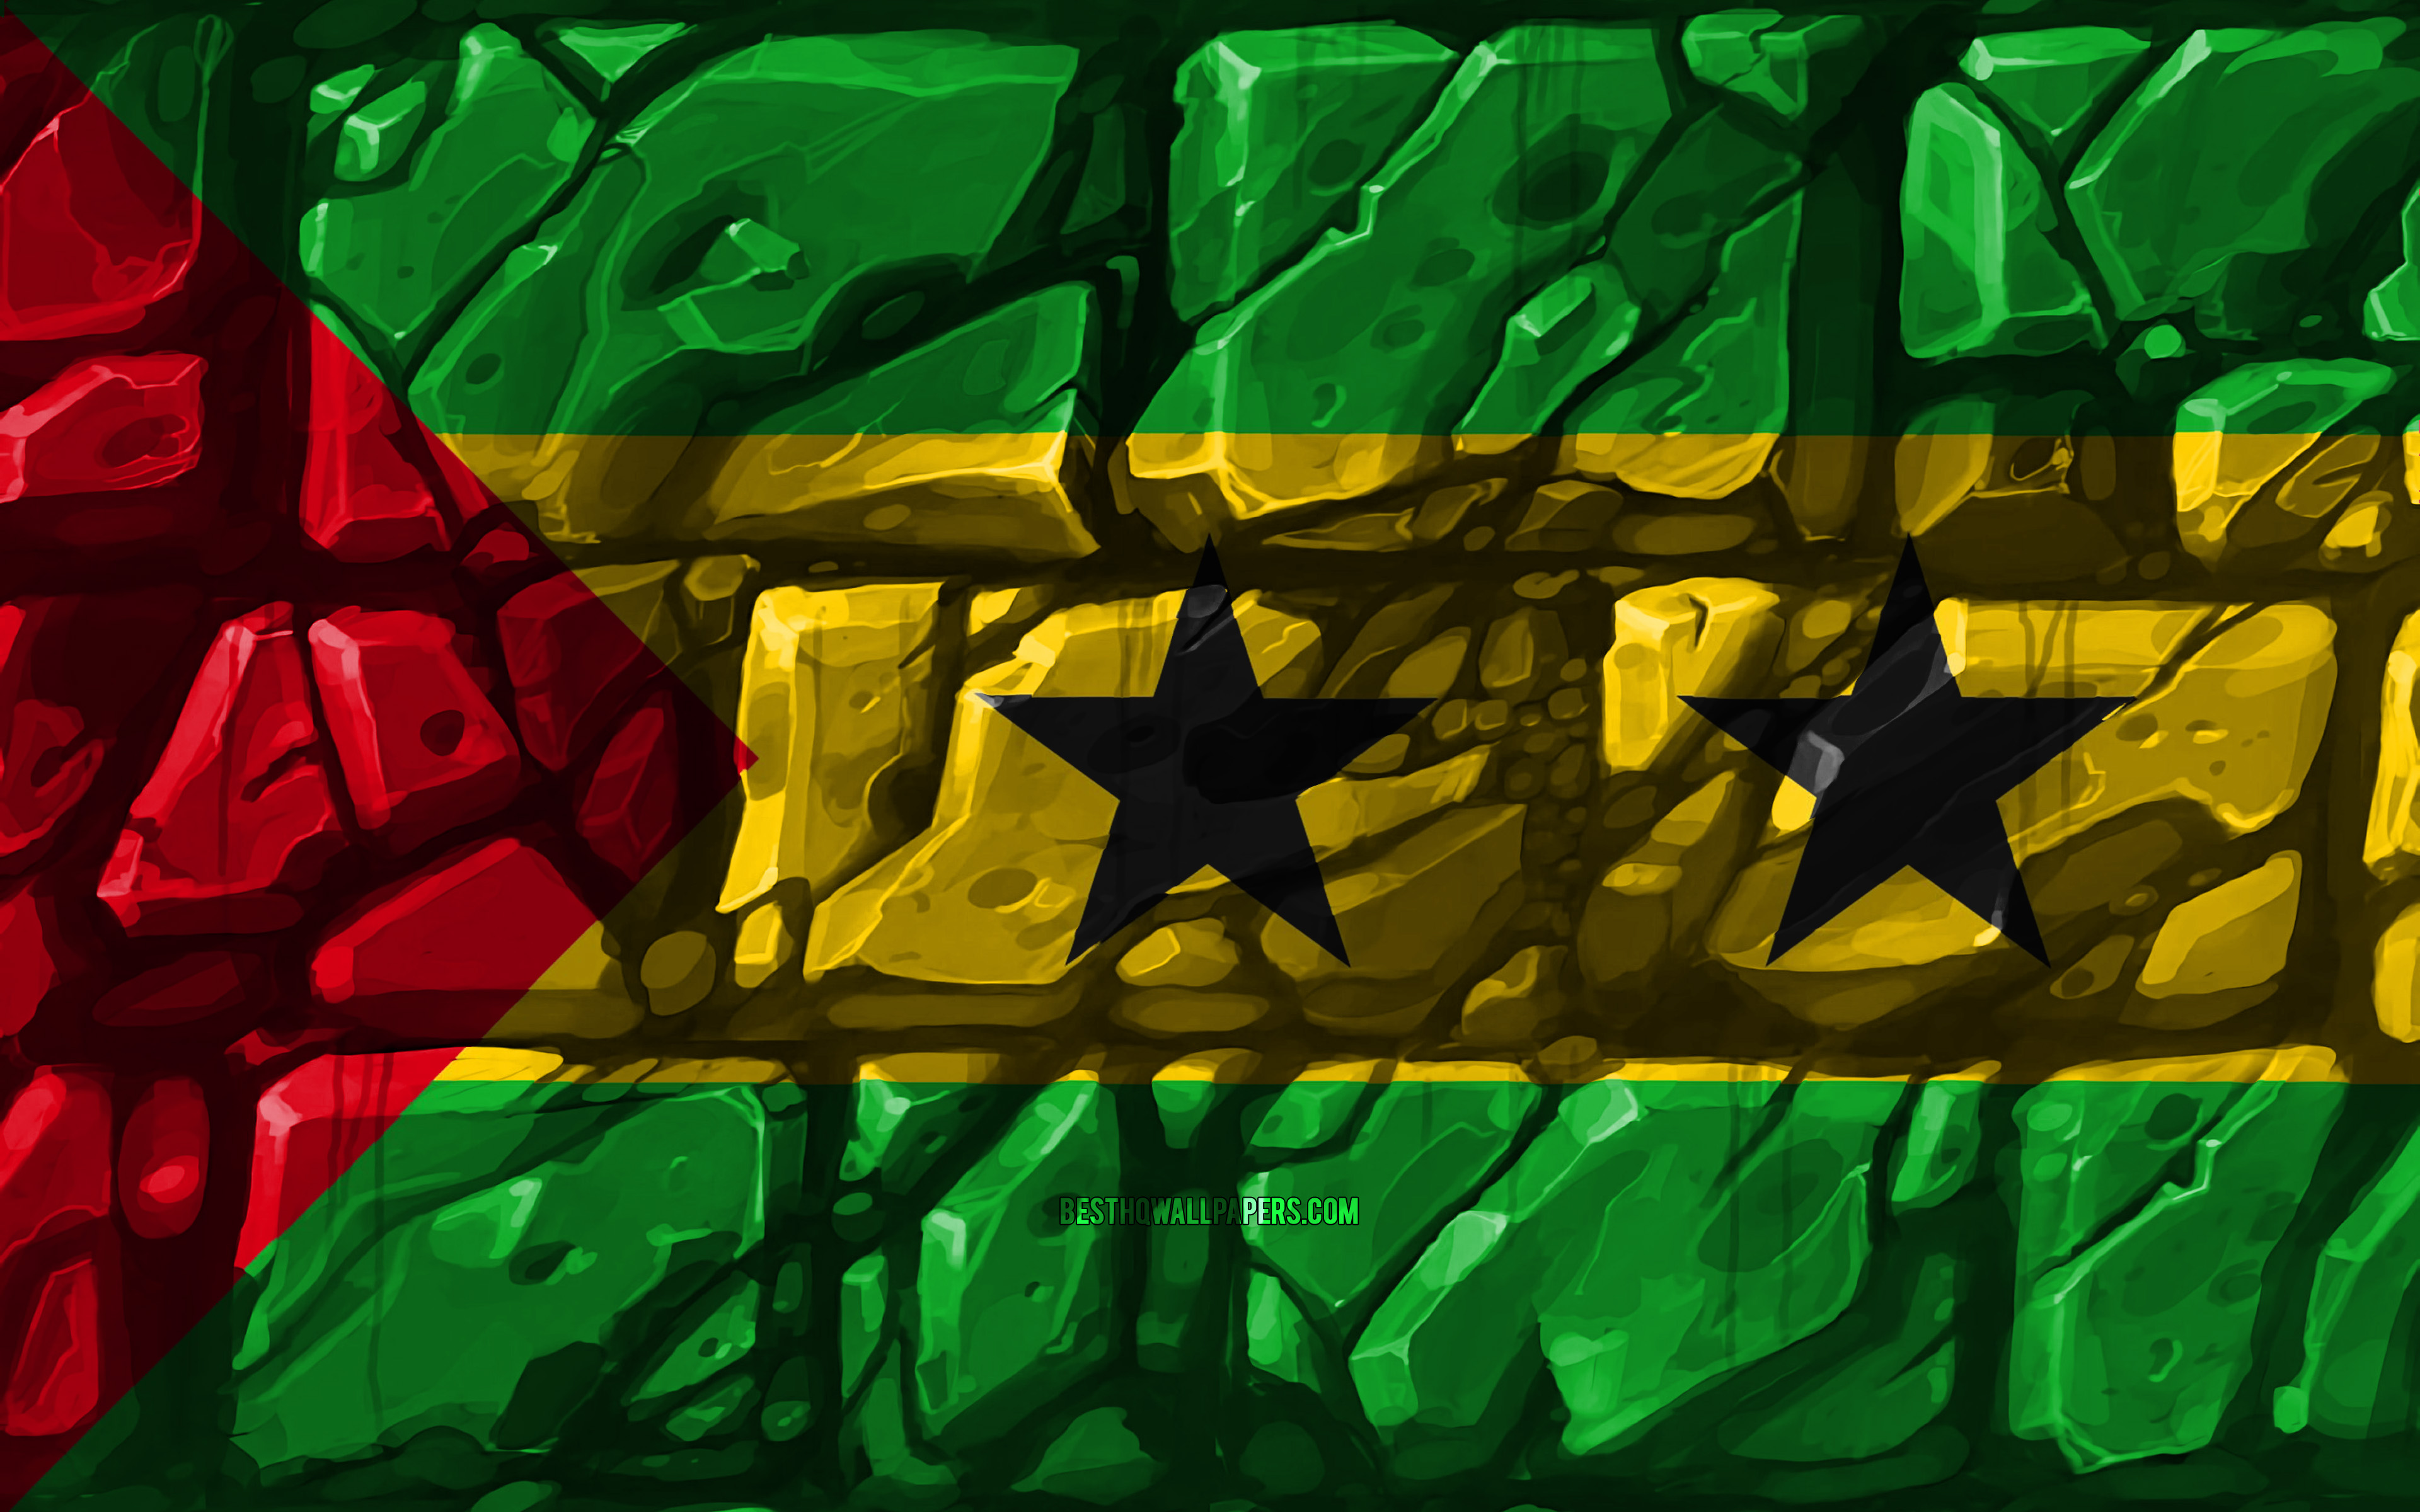 Download wallpapers Sao Tome and Principe flag brickwall 4k 3840x2400